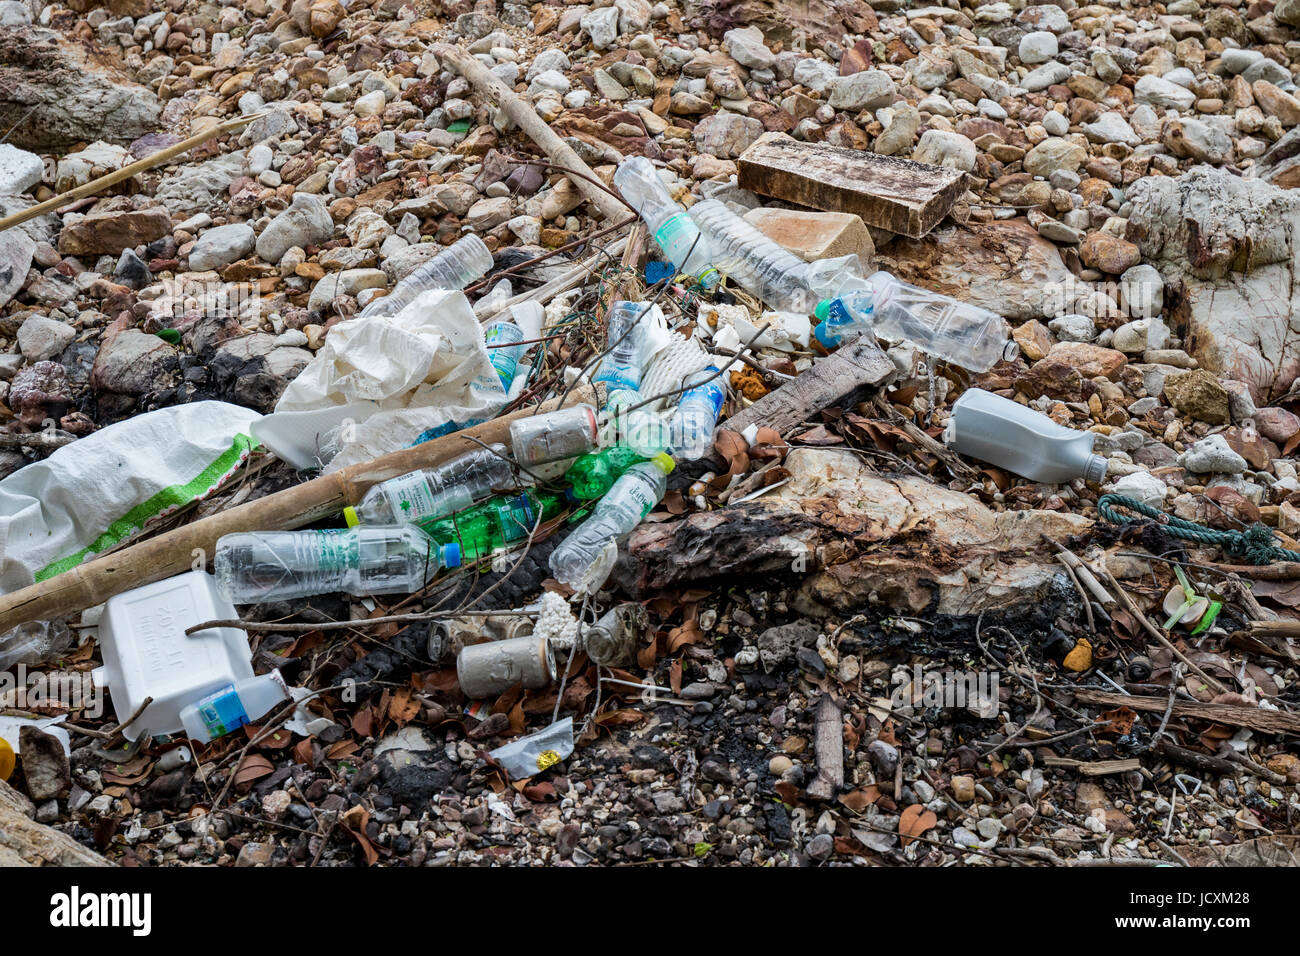 Trash in the ocean washed up on the beach - Stock Image